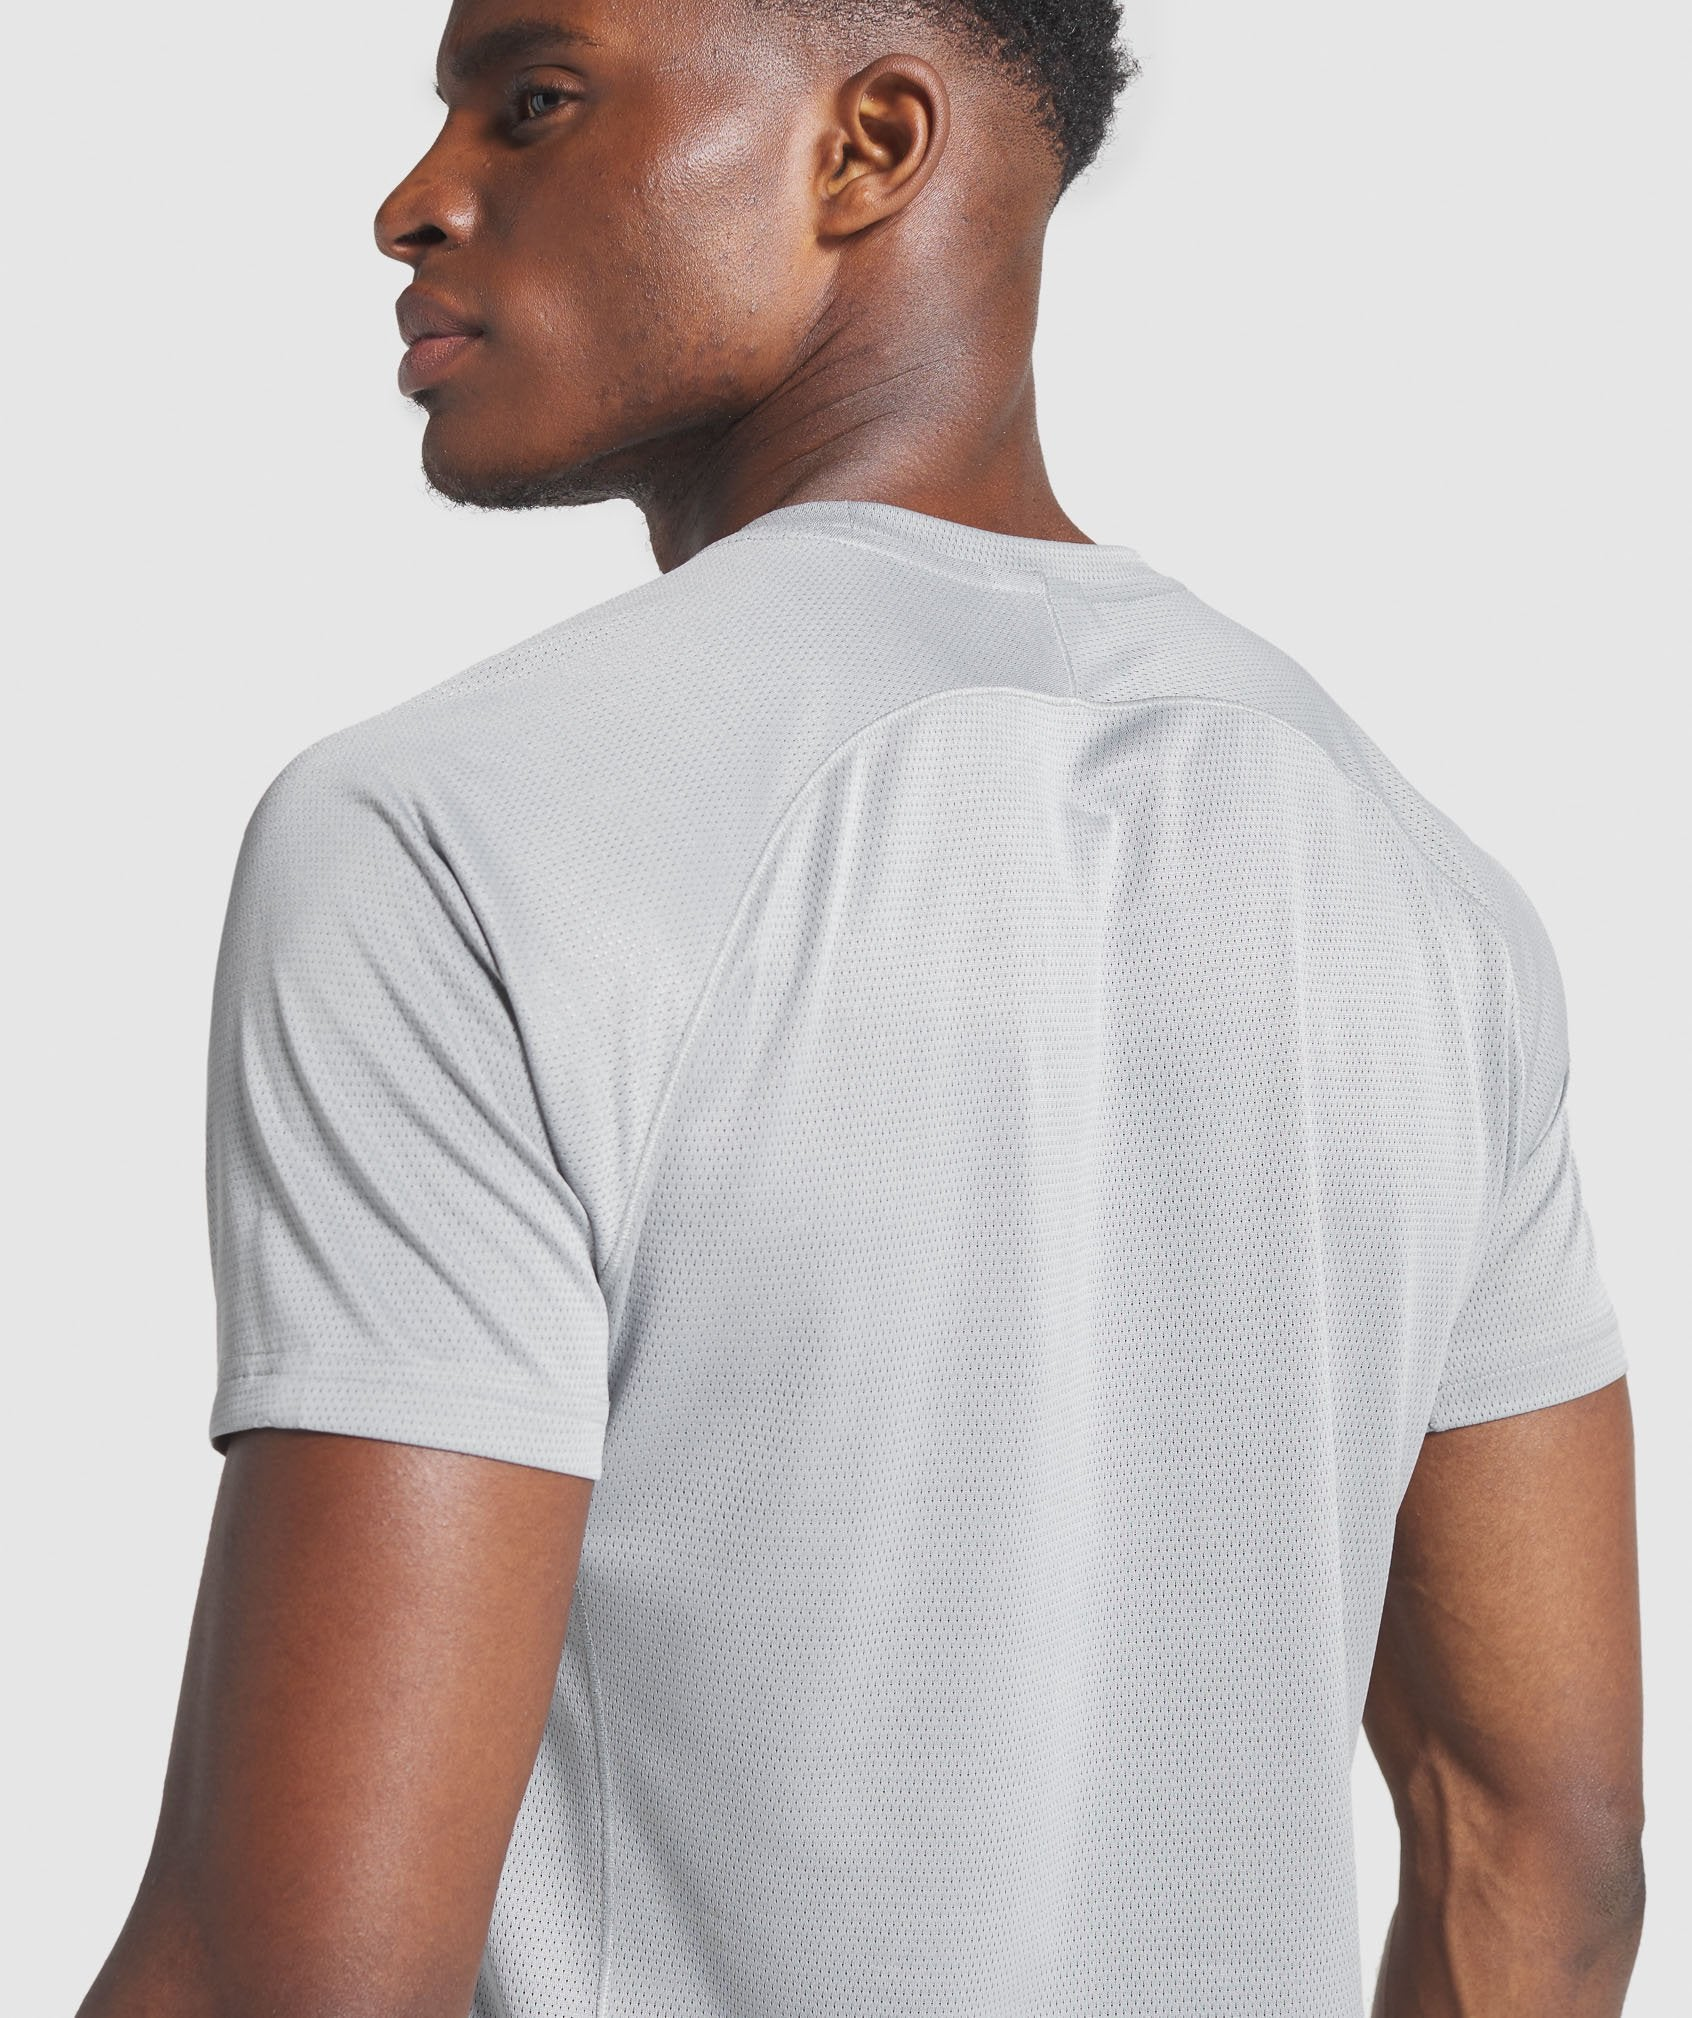 Classier: Buy Gymshark Aspect T-Shirt - Smokey Grey - Gymshark